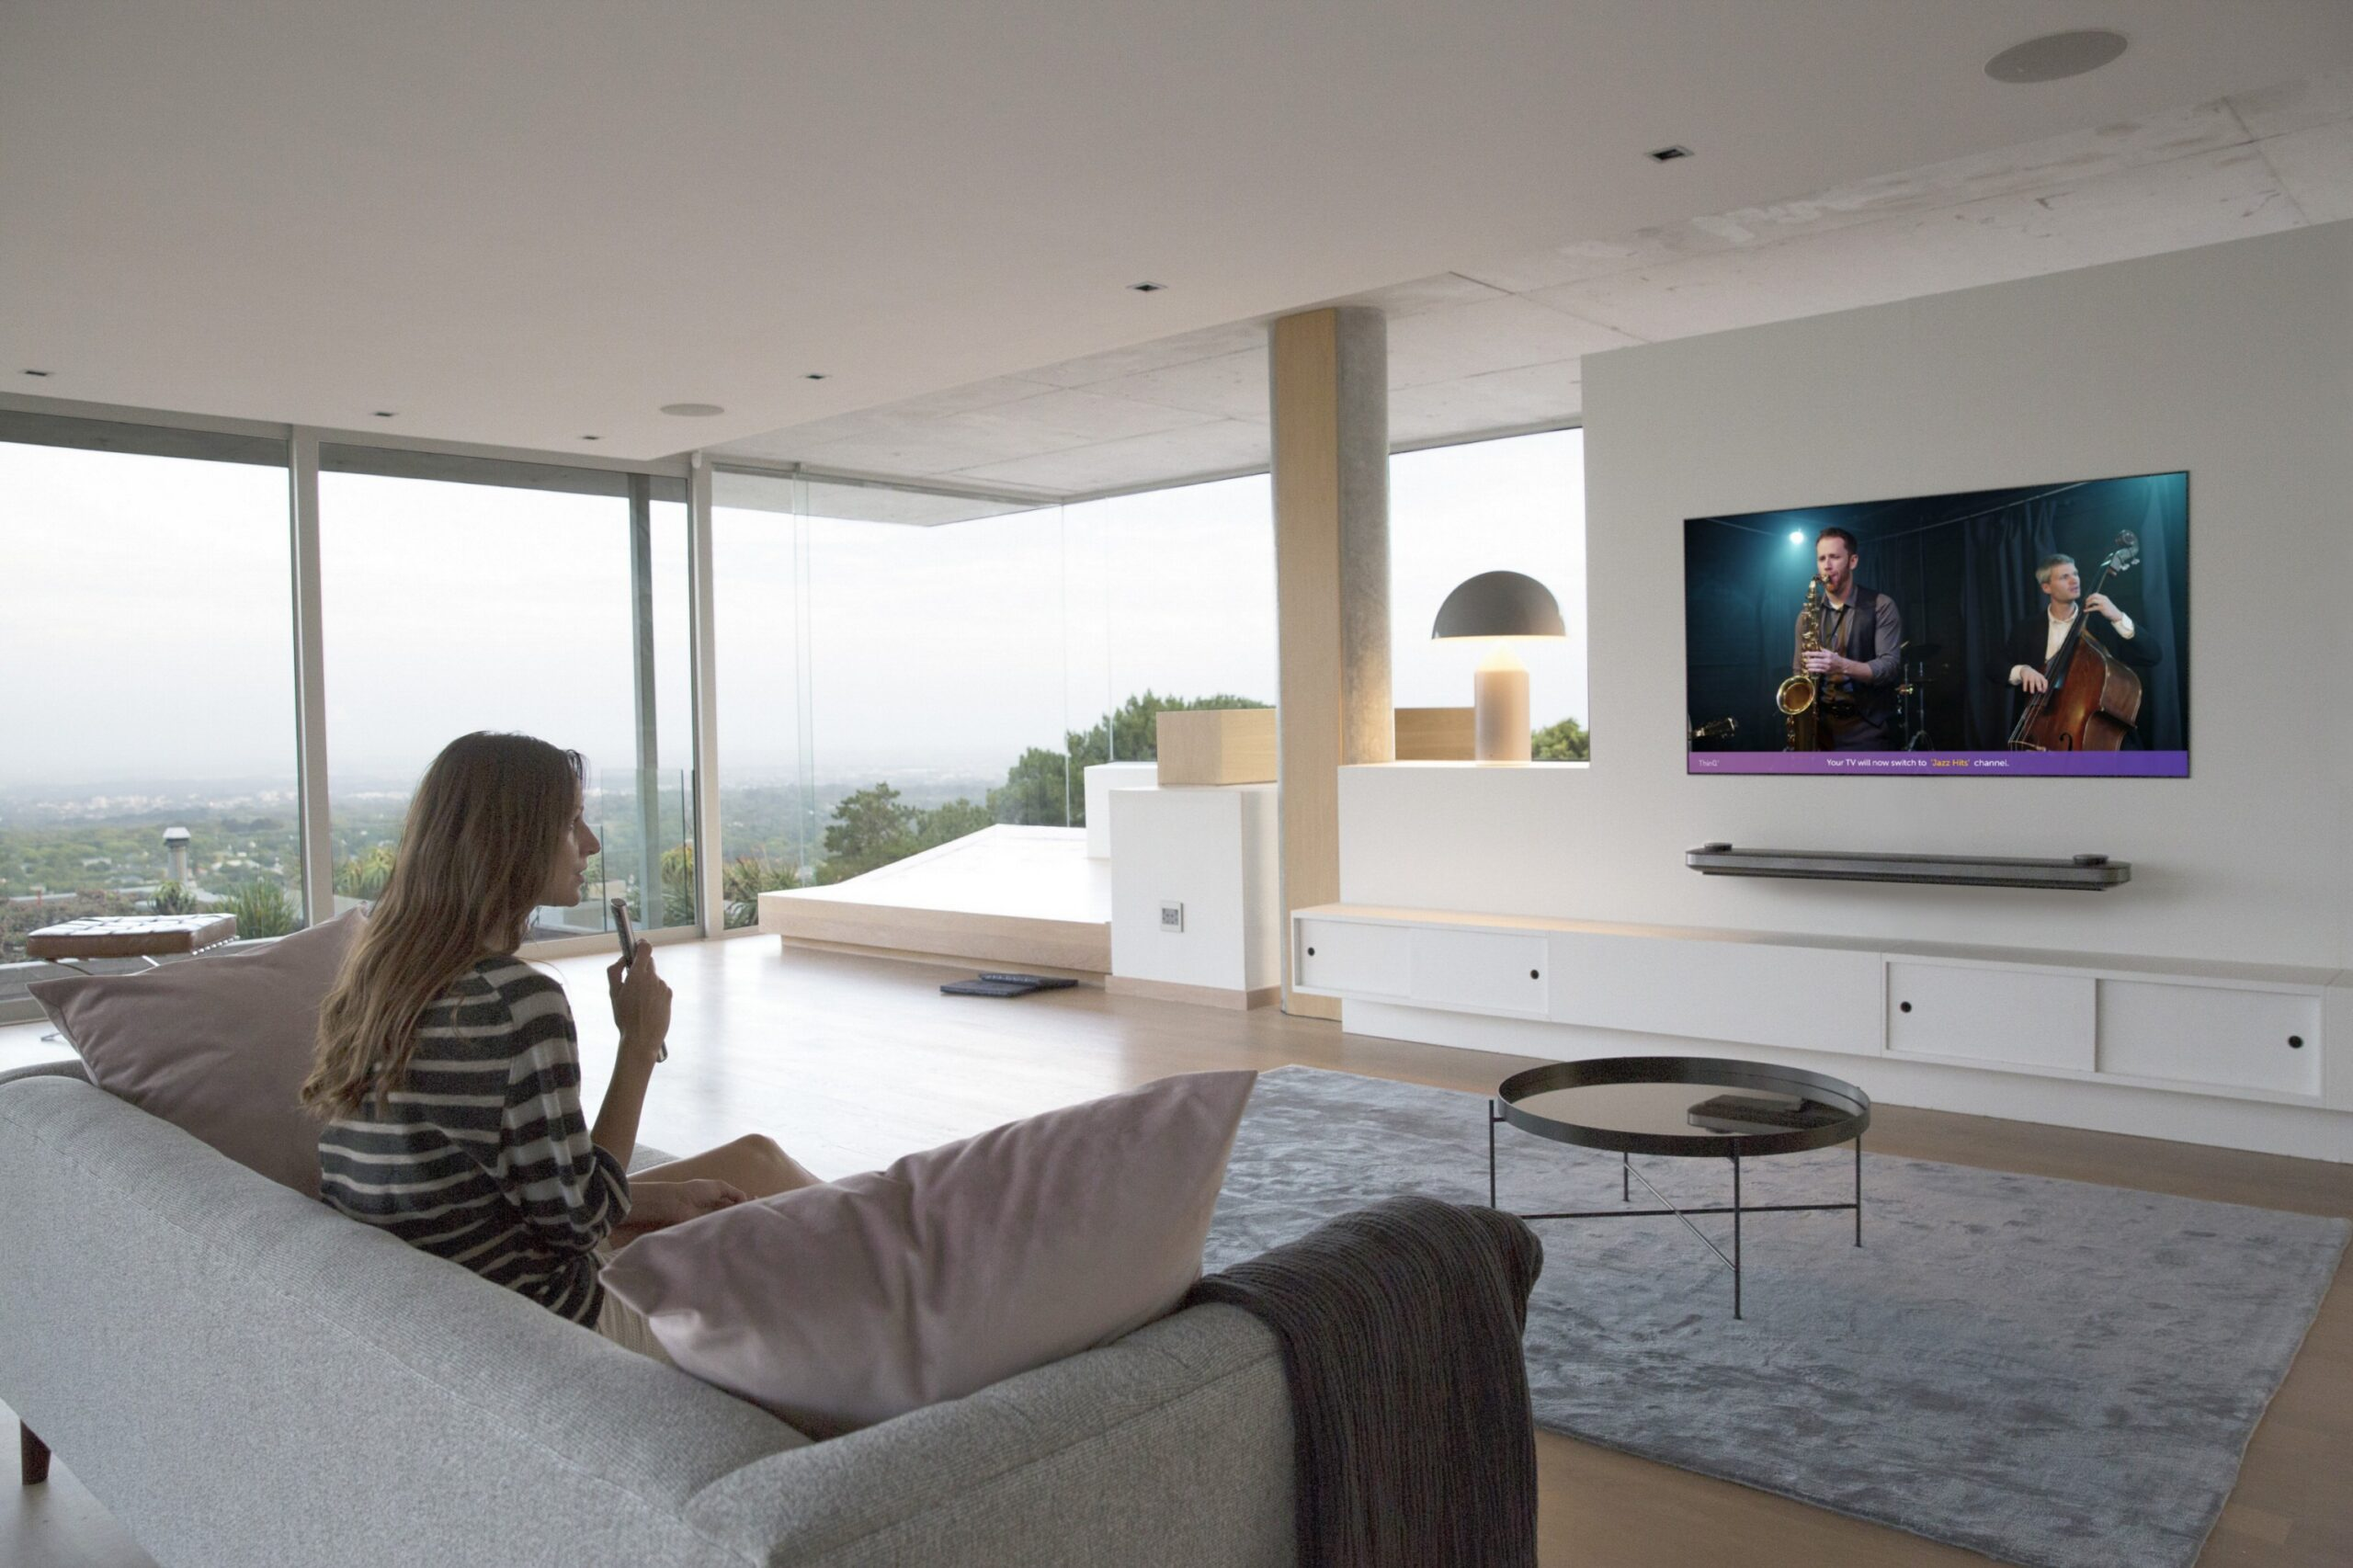 A woman sitting on a couch in a modern apartment watching a jazz band play on her LG AI OLED TV